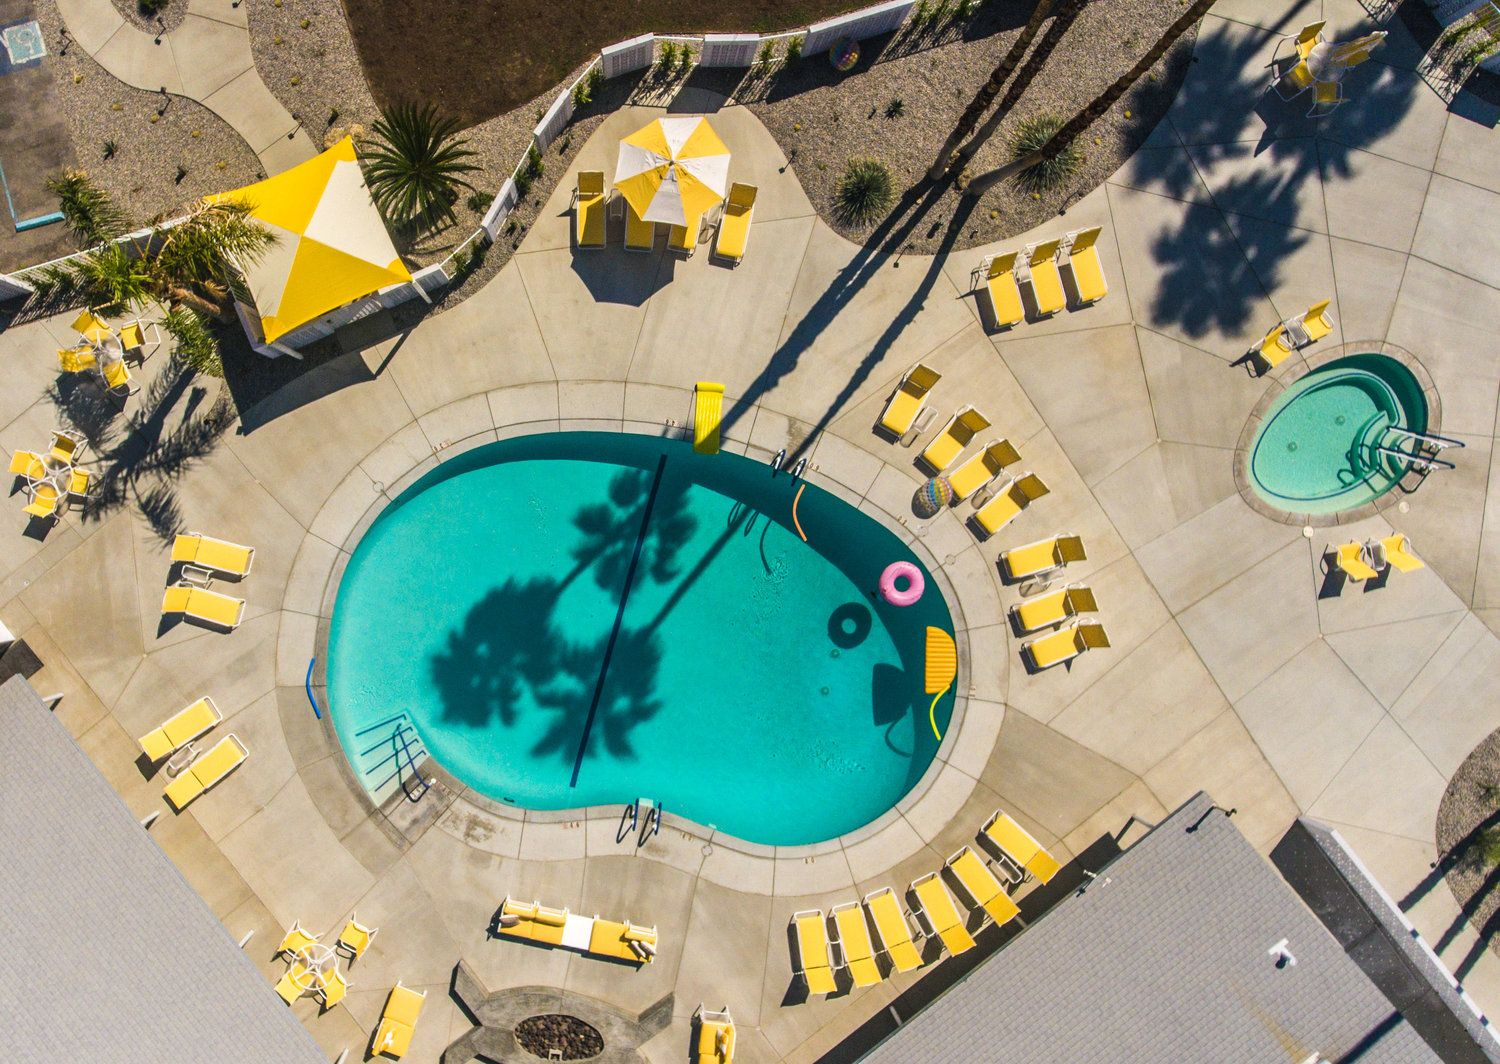 Palm canyon mobile club in 2020 tiny house pool area pool